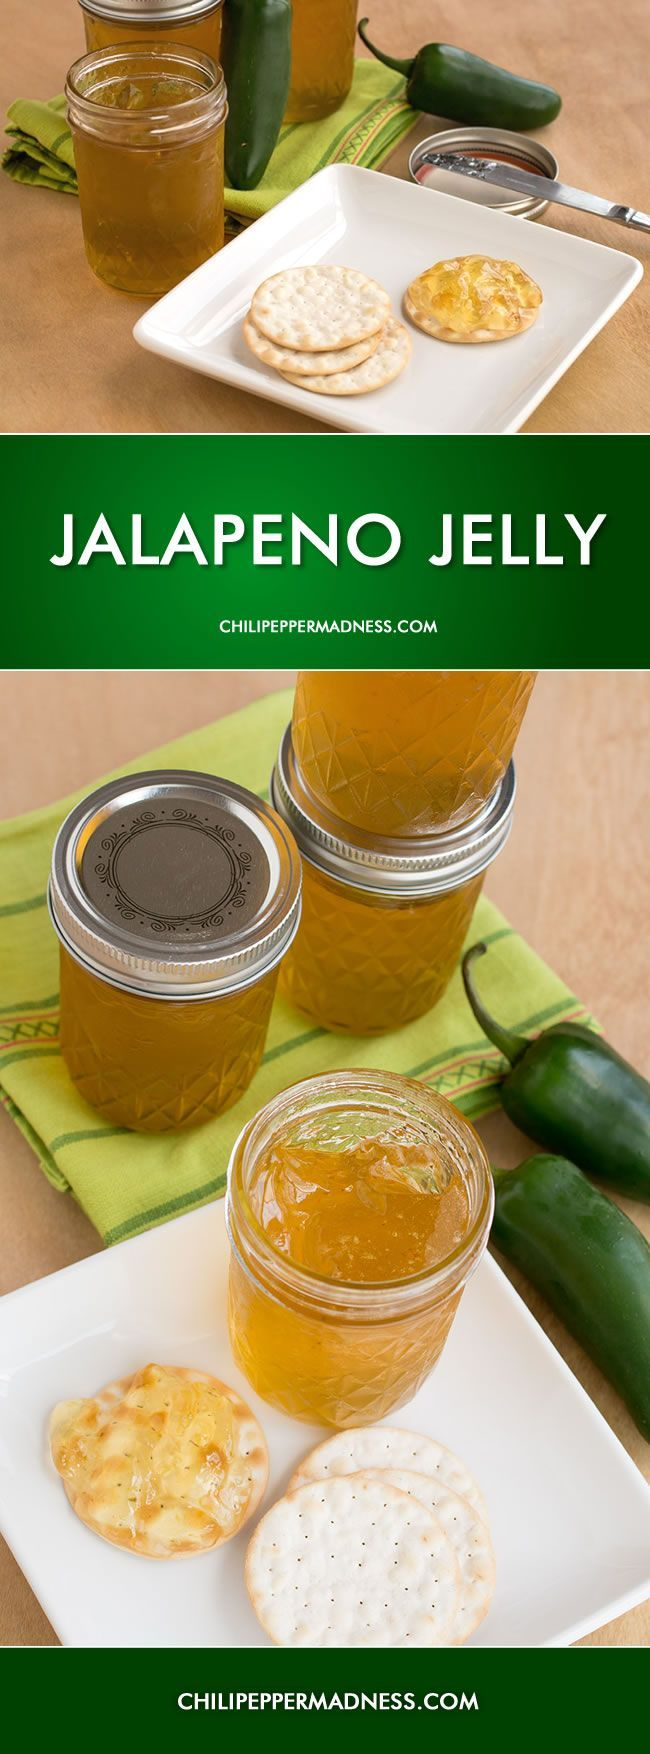 Jalapeno Jelly - great on bread or a cracker, topping for fish or meat, or on your sandwich.